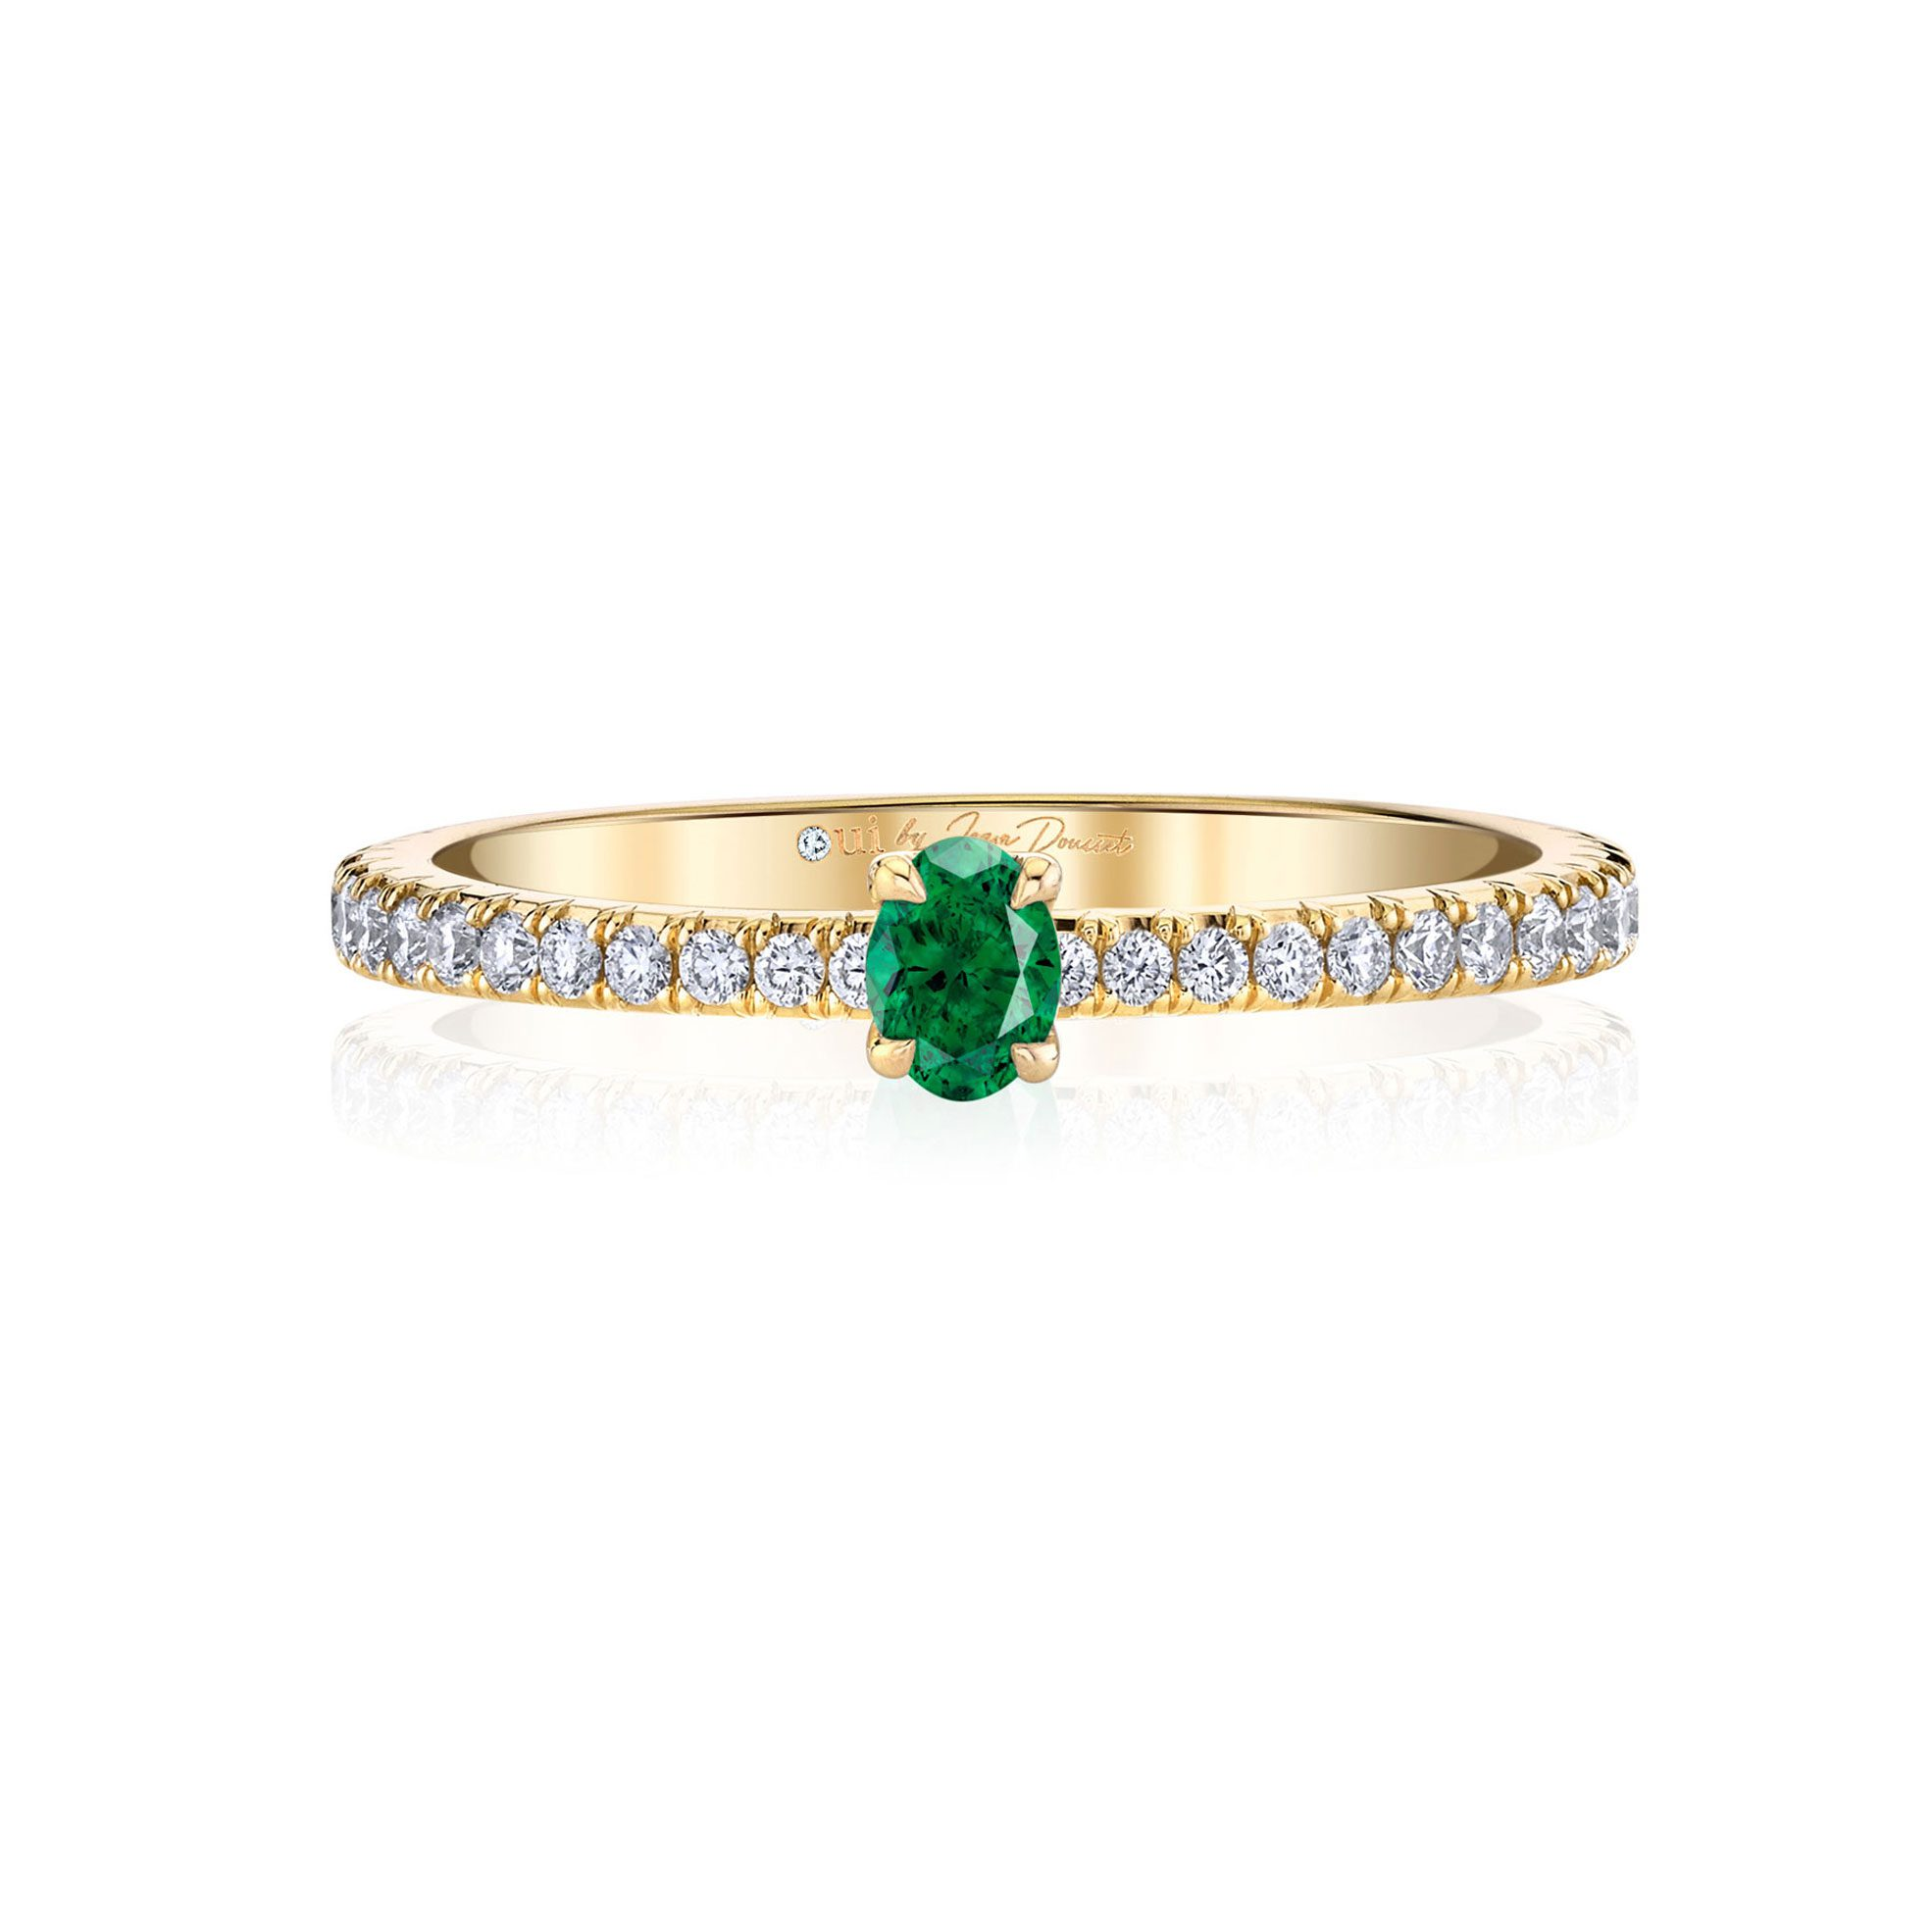 La Petite Oval Emerald Ring diamond pavé band in 18k Yellow Gold Front View by Oui by Jean Dousset